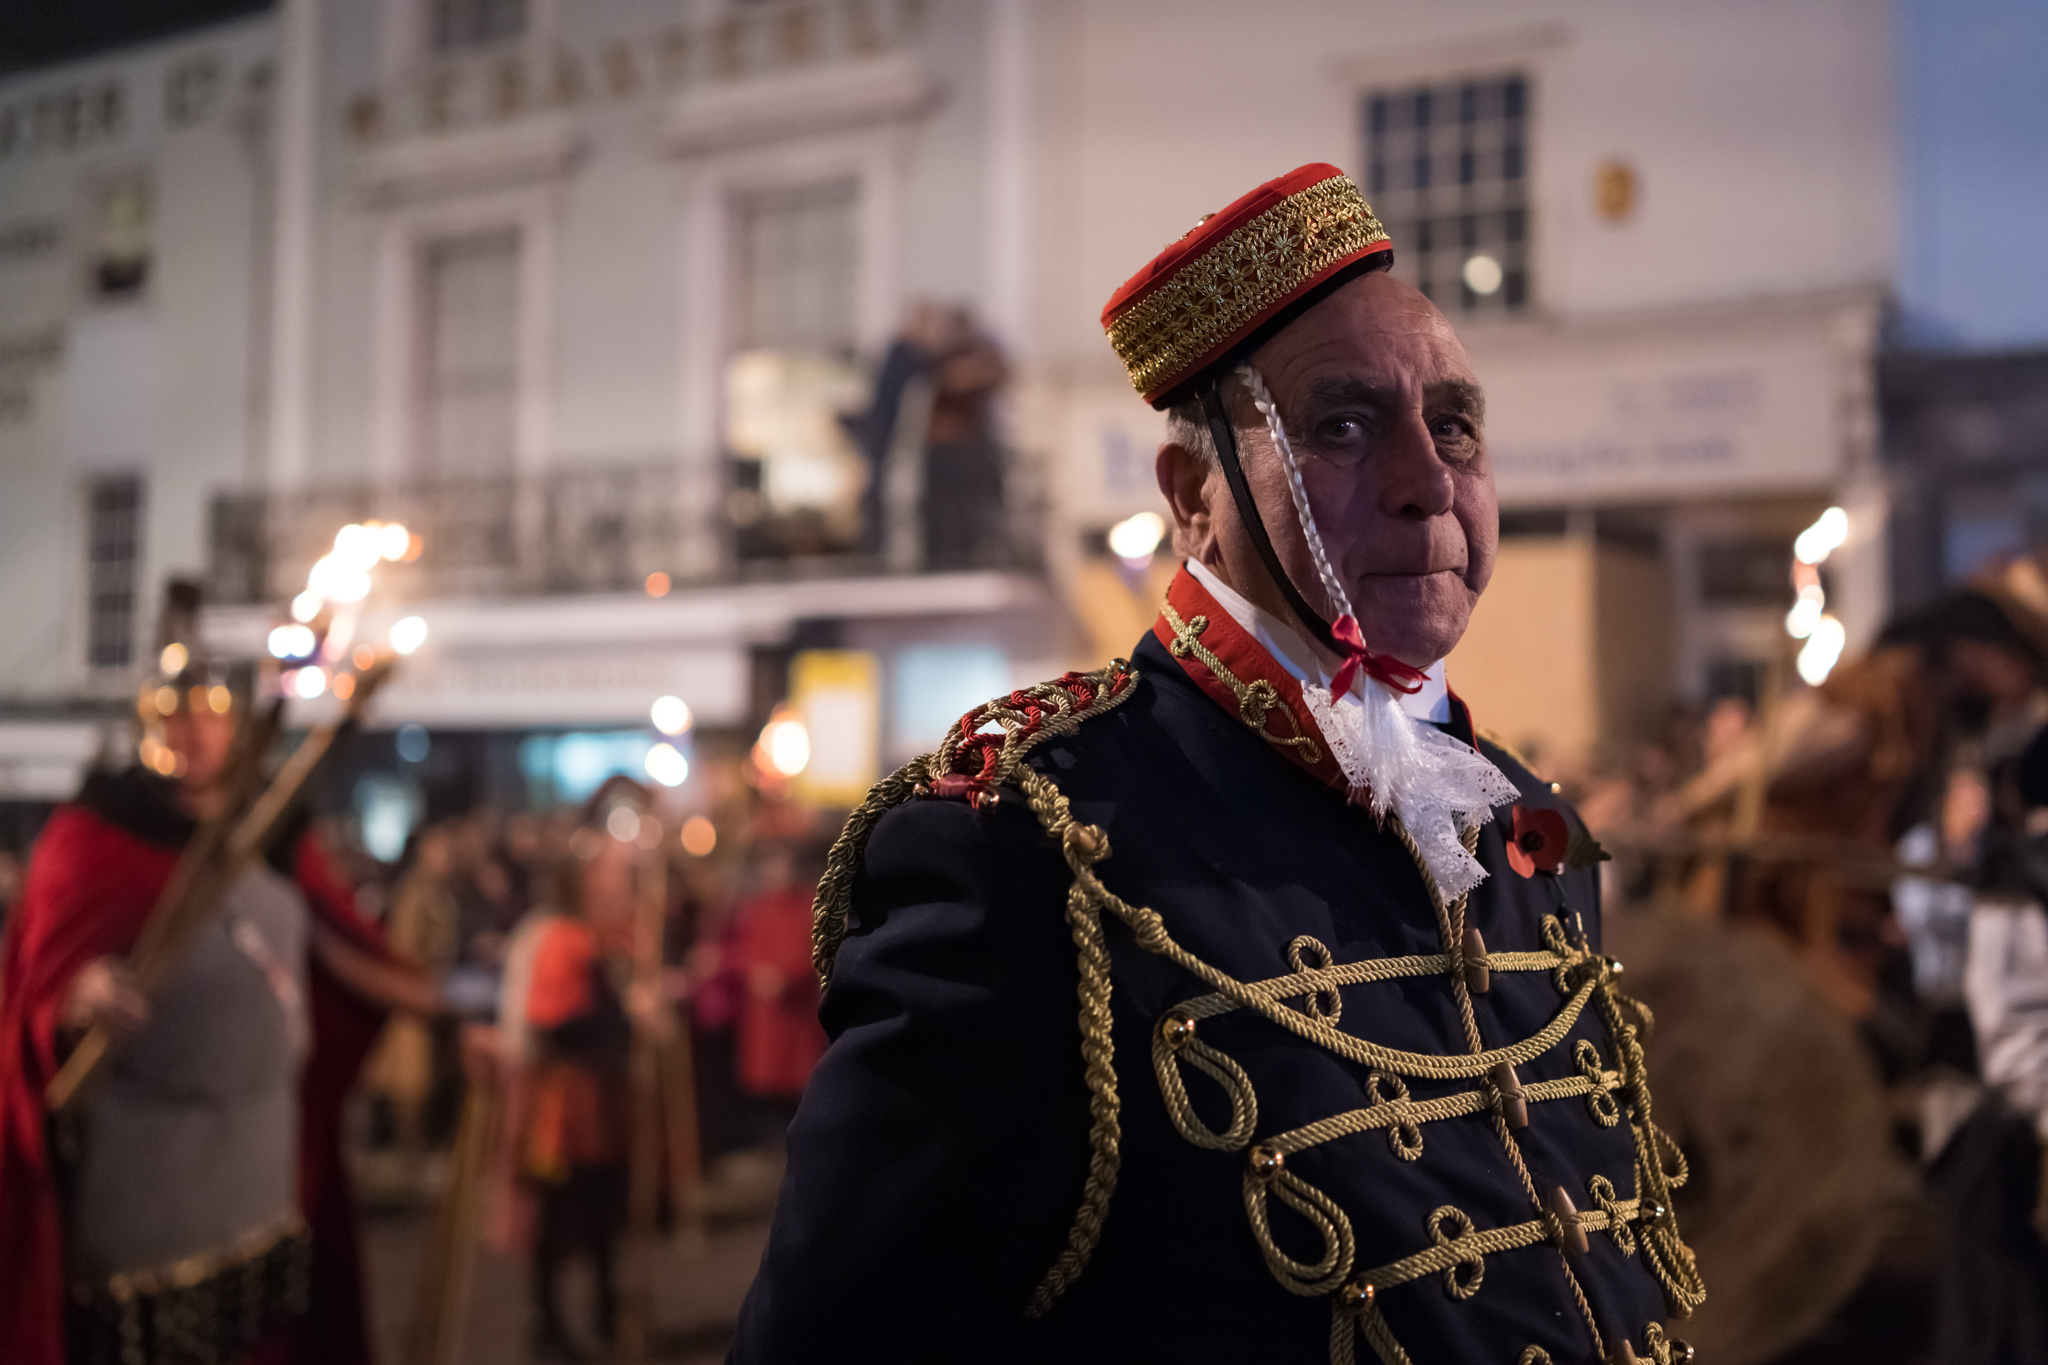 A man in one of many historical costumes worn by society members parading through the streets carrying torches, effigies and burning crosses